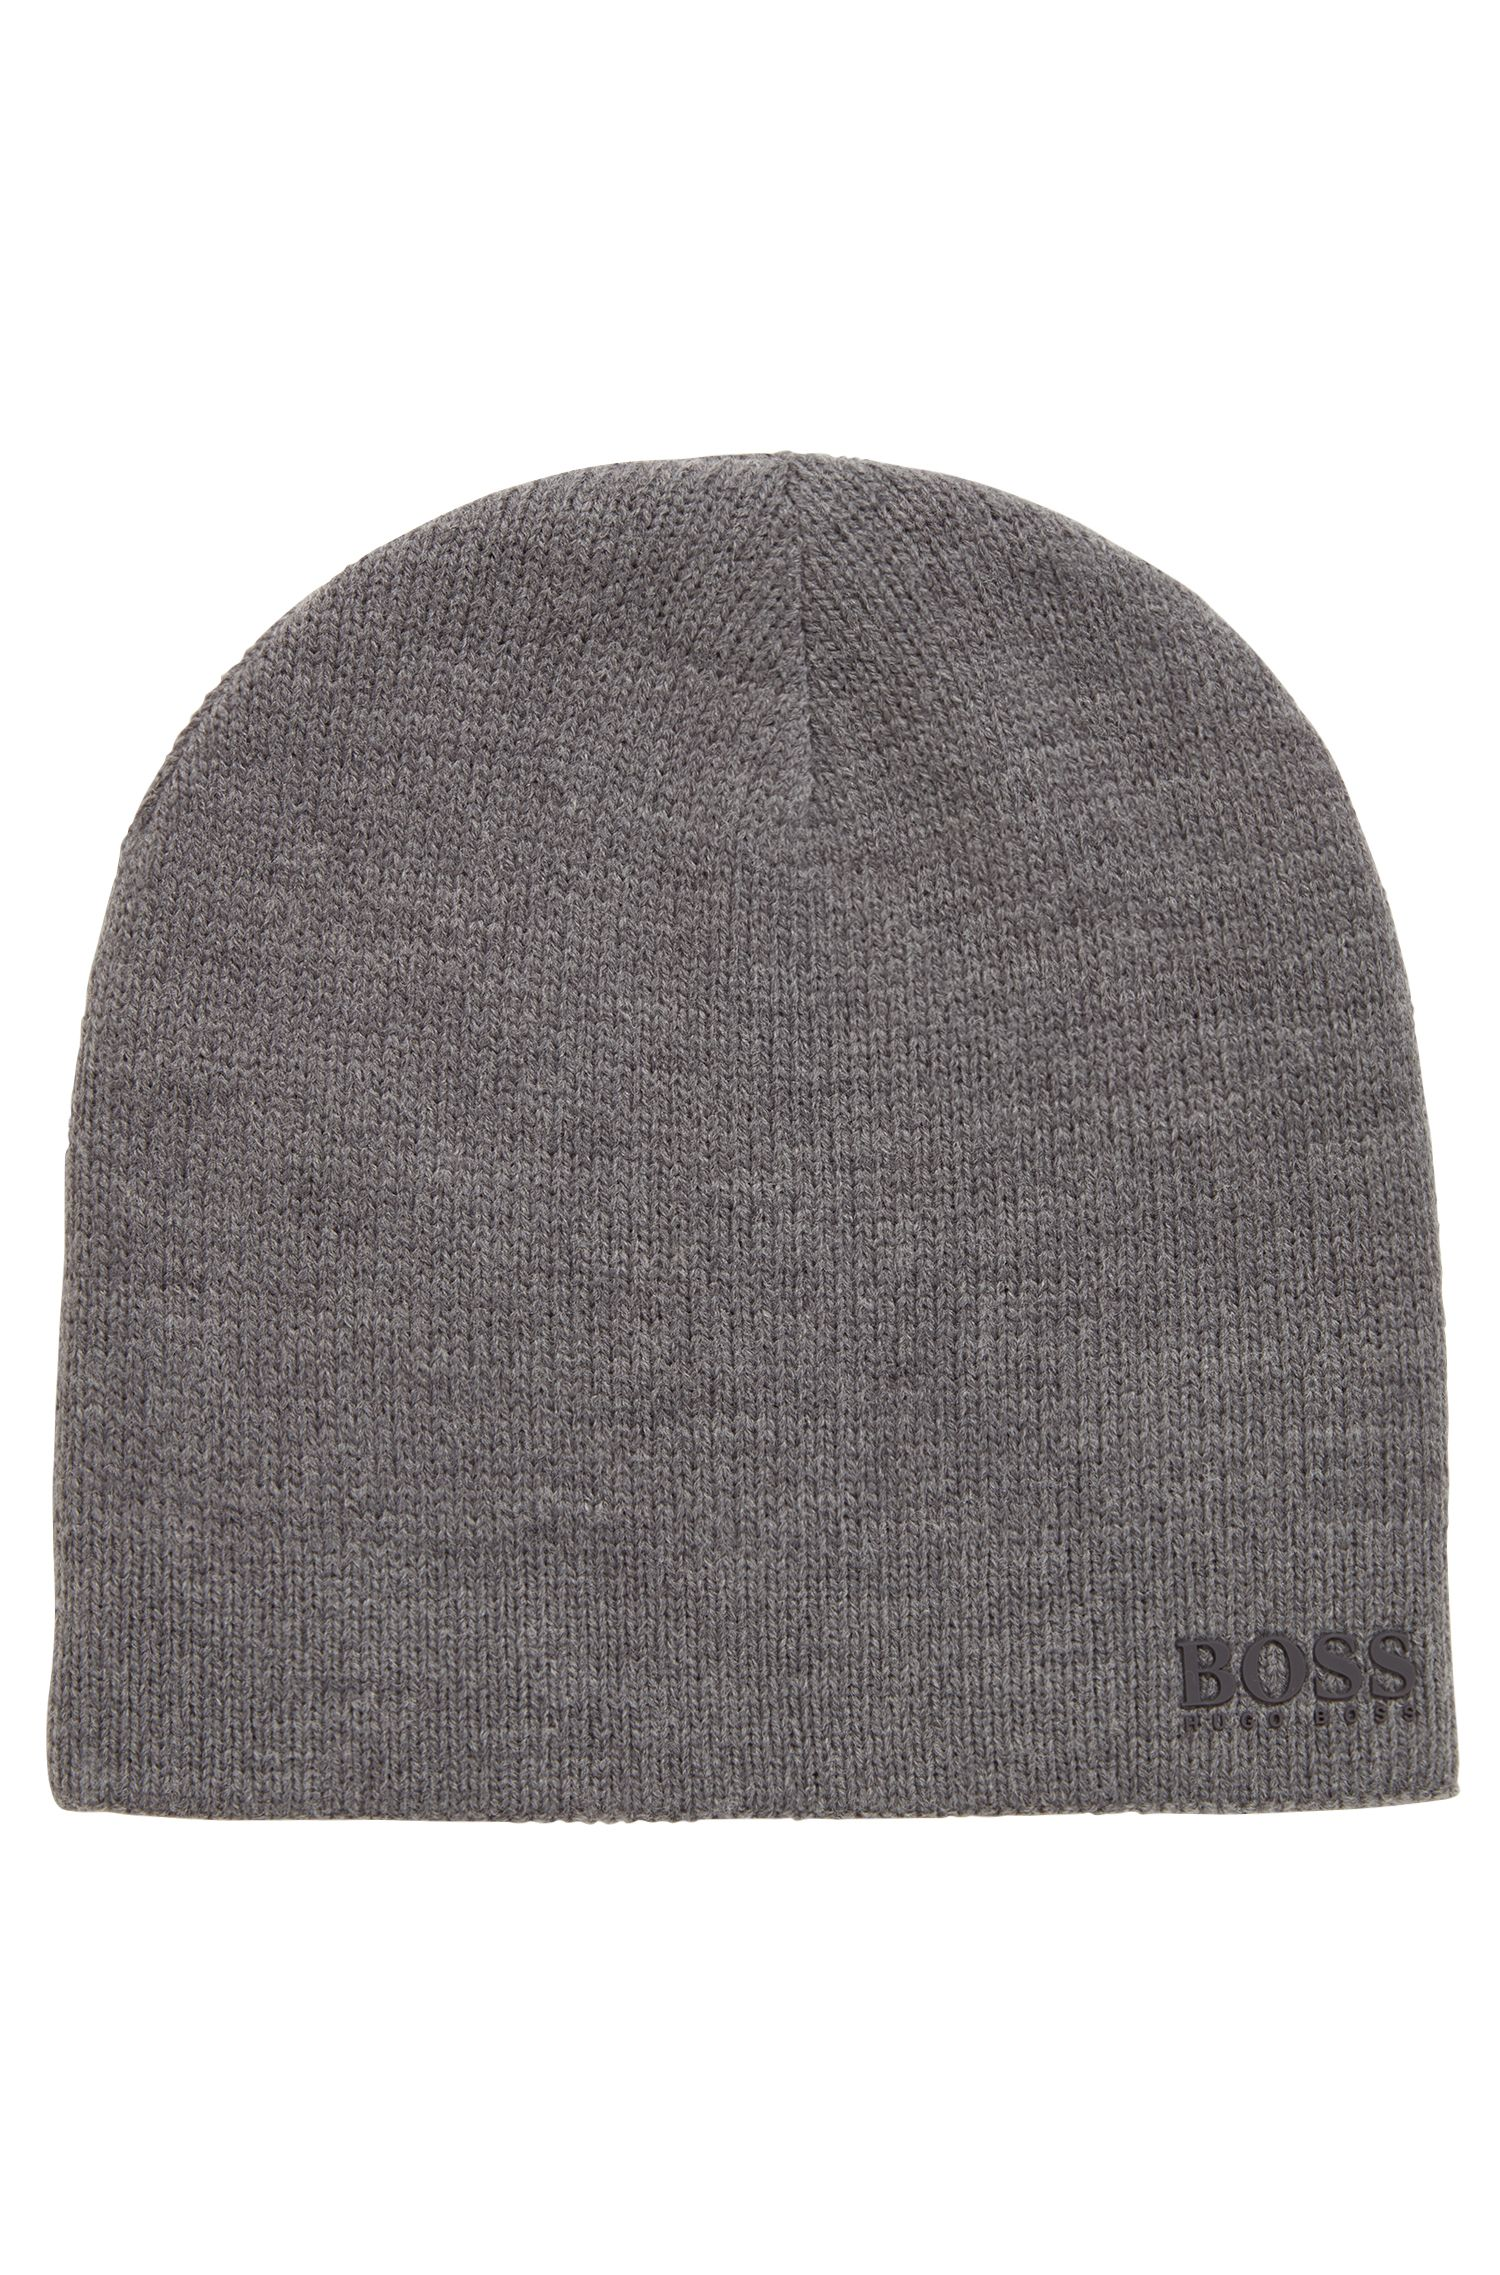 Reversible beanie with reflective yarn, Grey